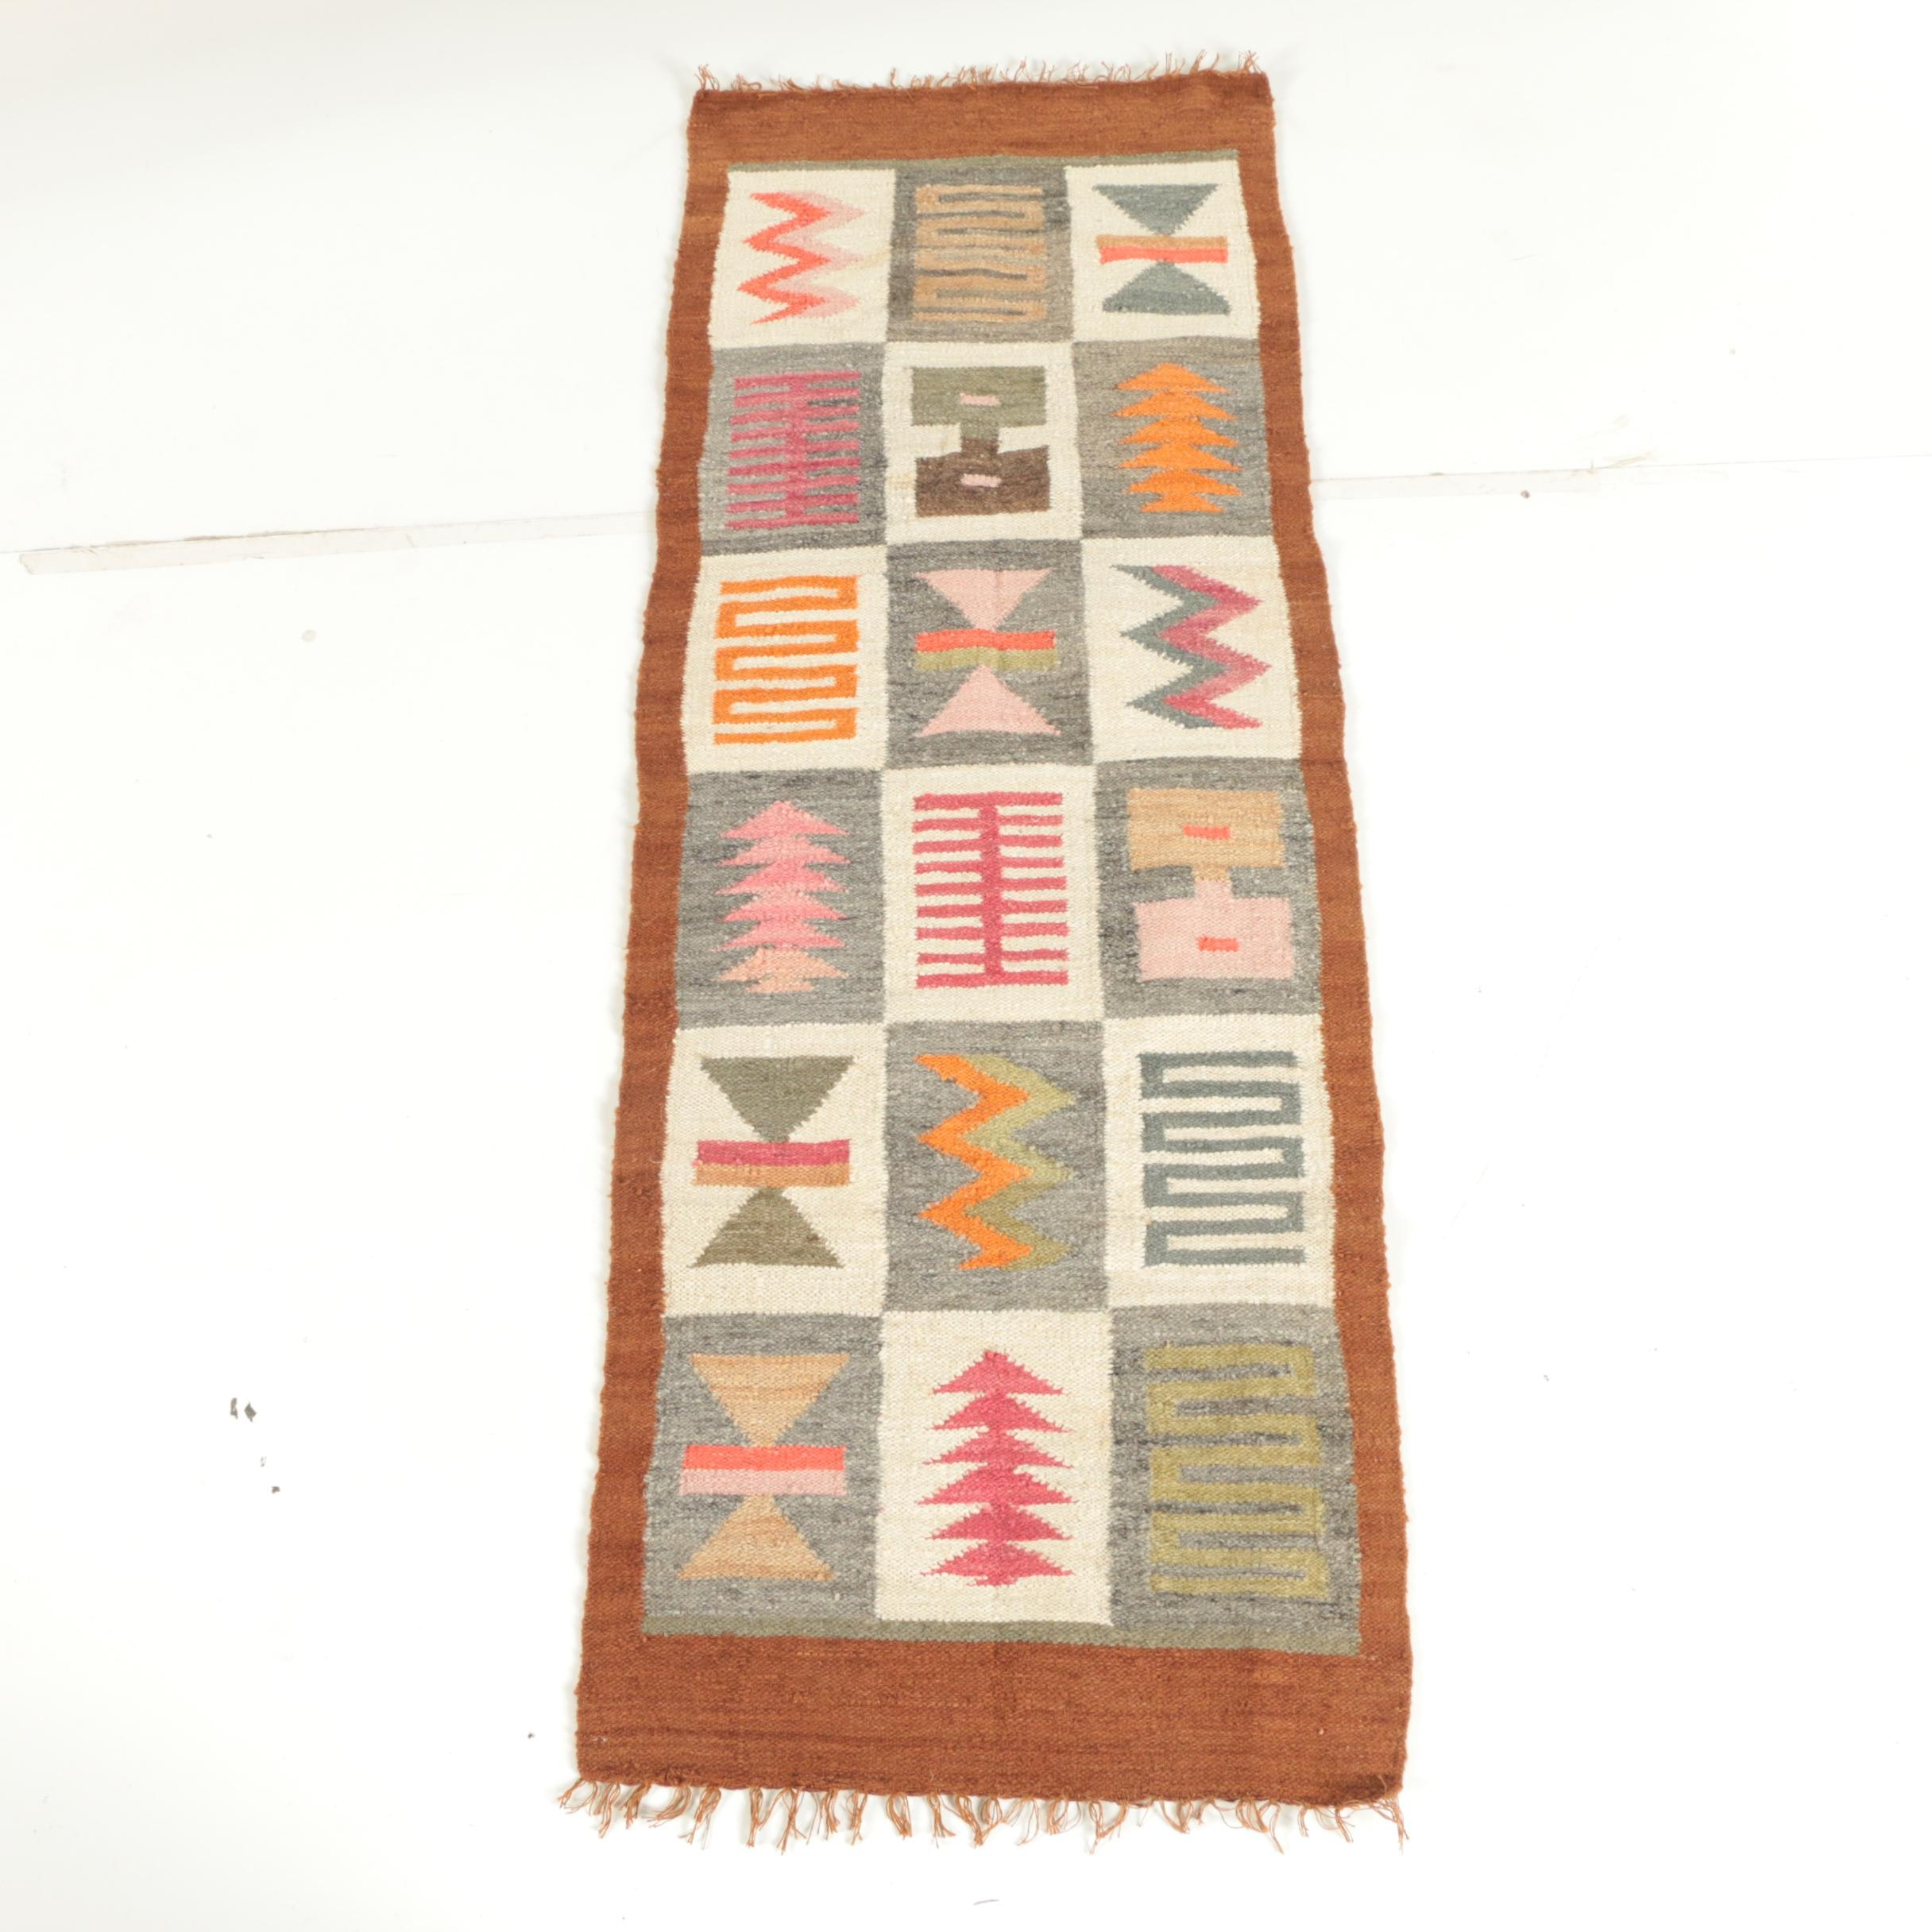 Handwoven Mexican or South American Wool Carpet Runner